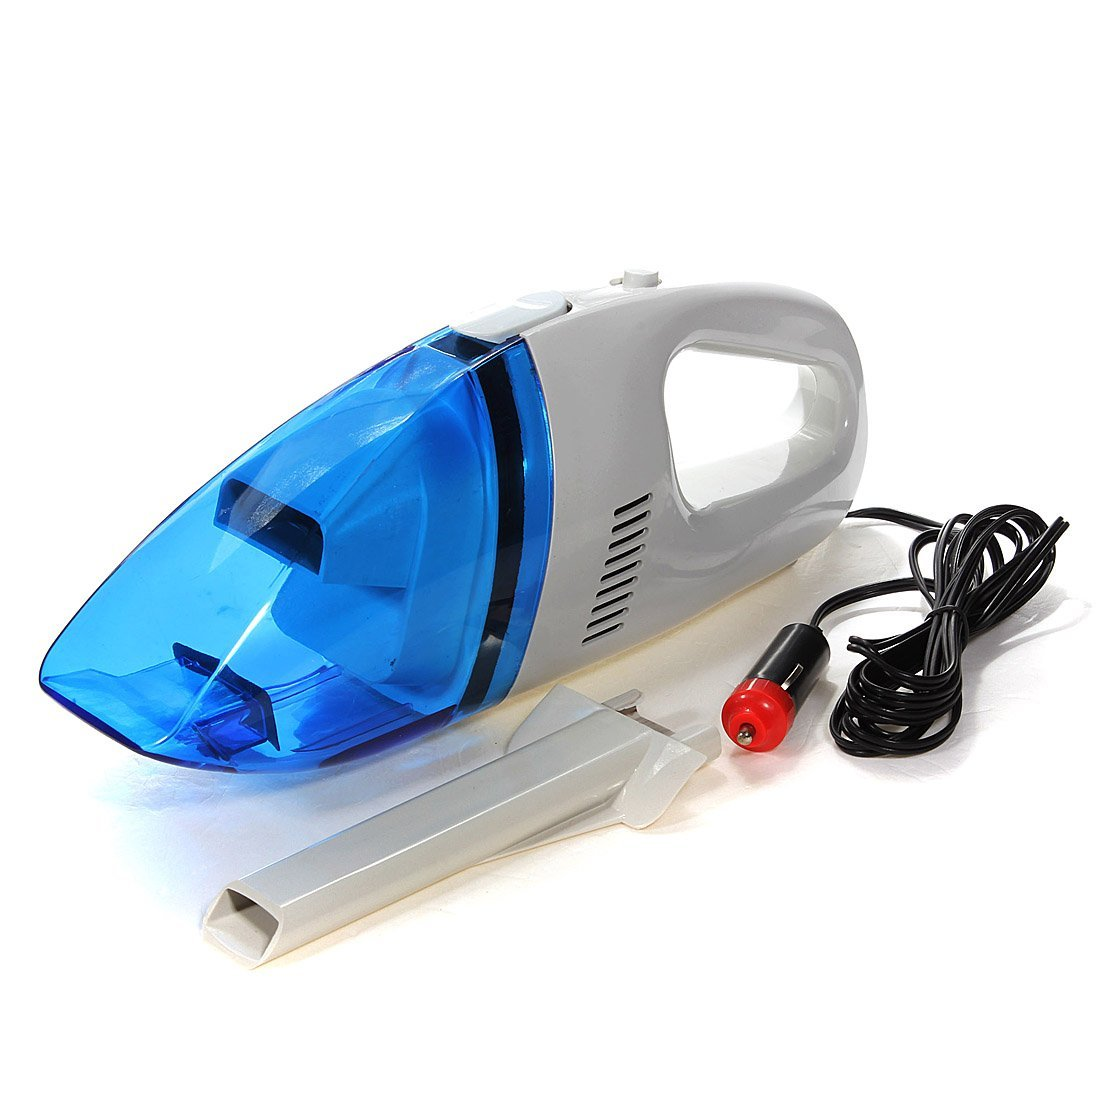 TekDeals Car Vehicle Auto Truck Portable Handheld High Powered 12V Wet Dry Vacuum Cleaner